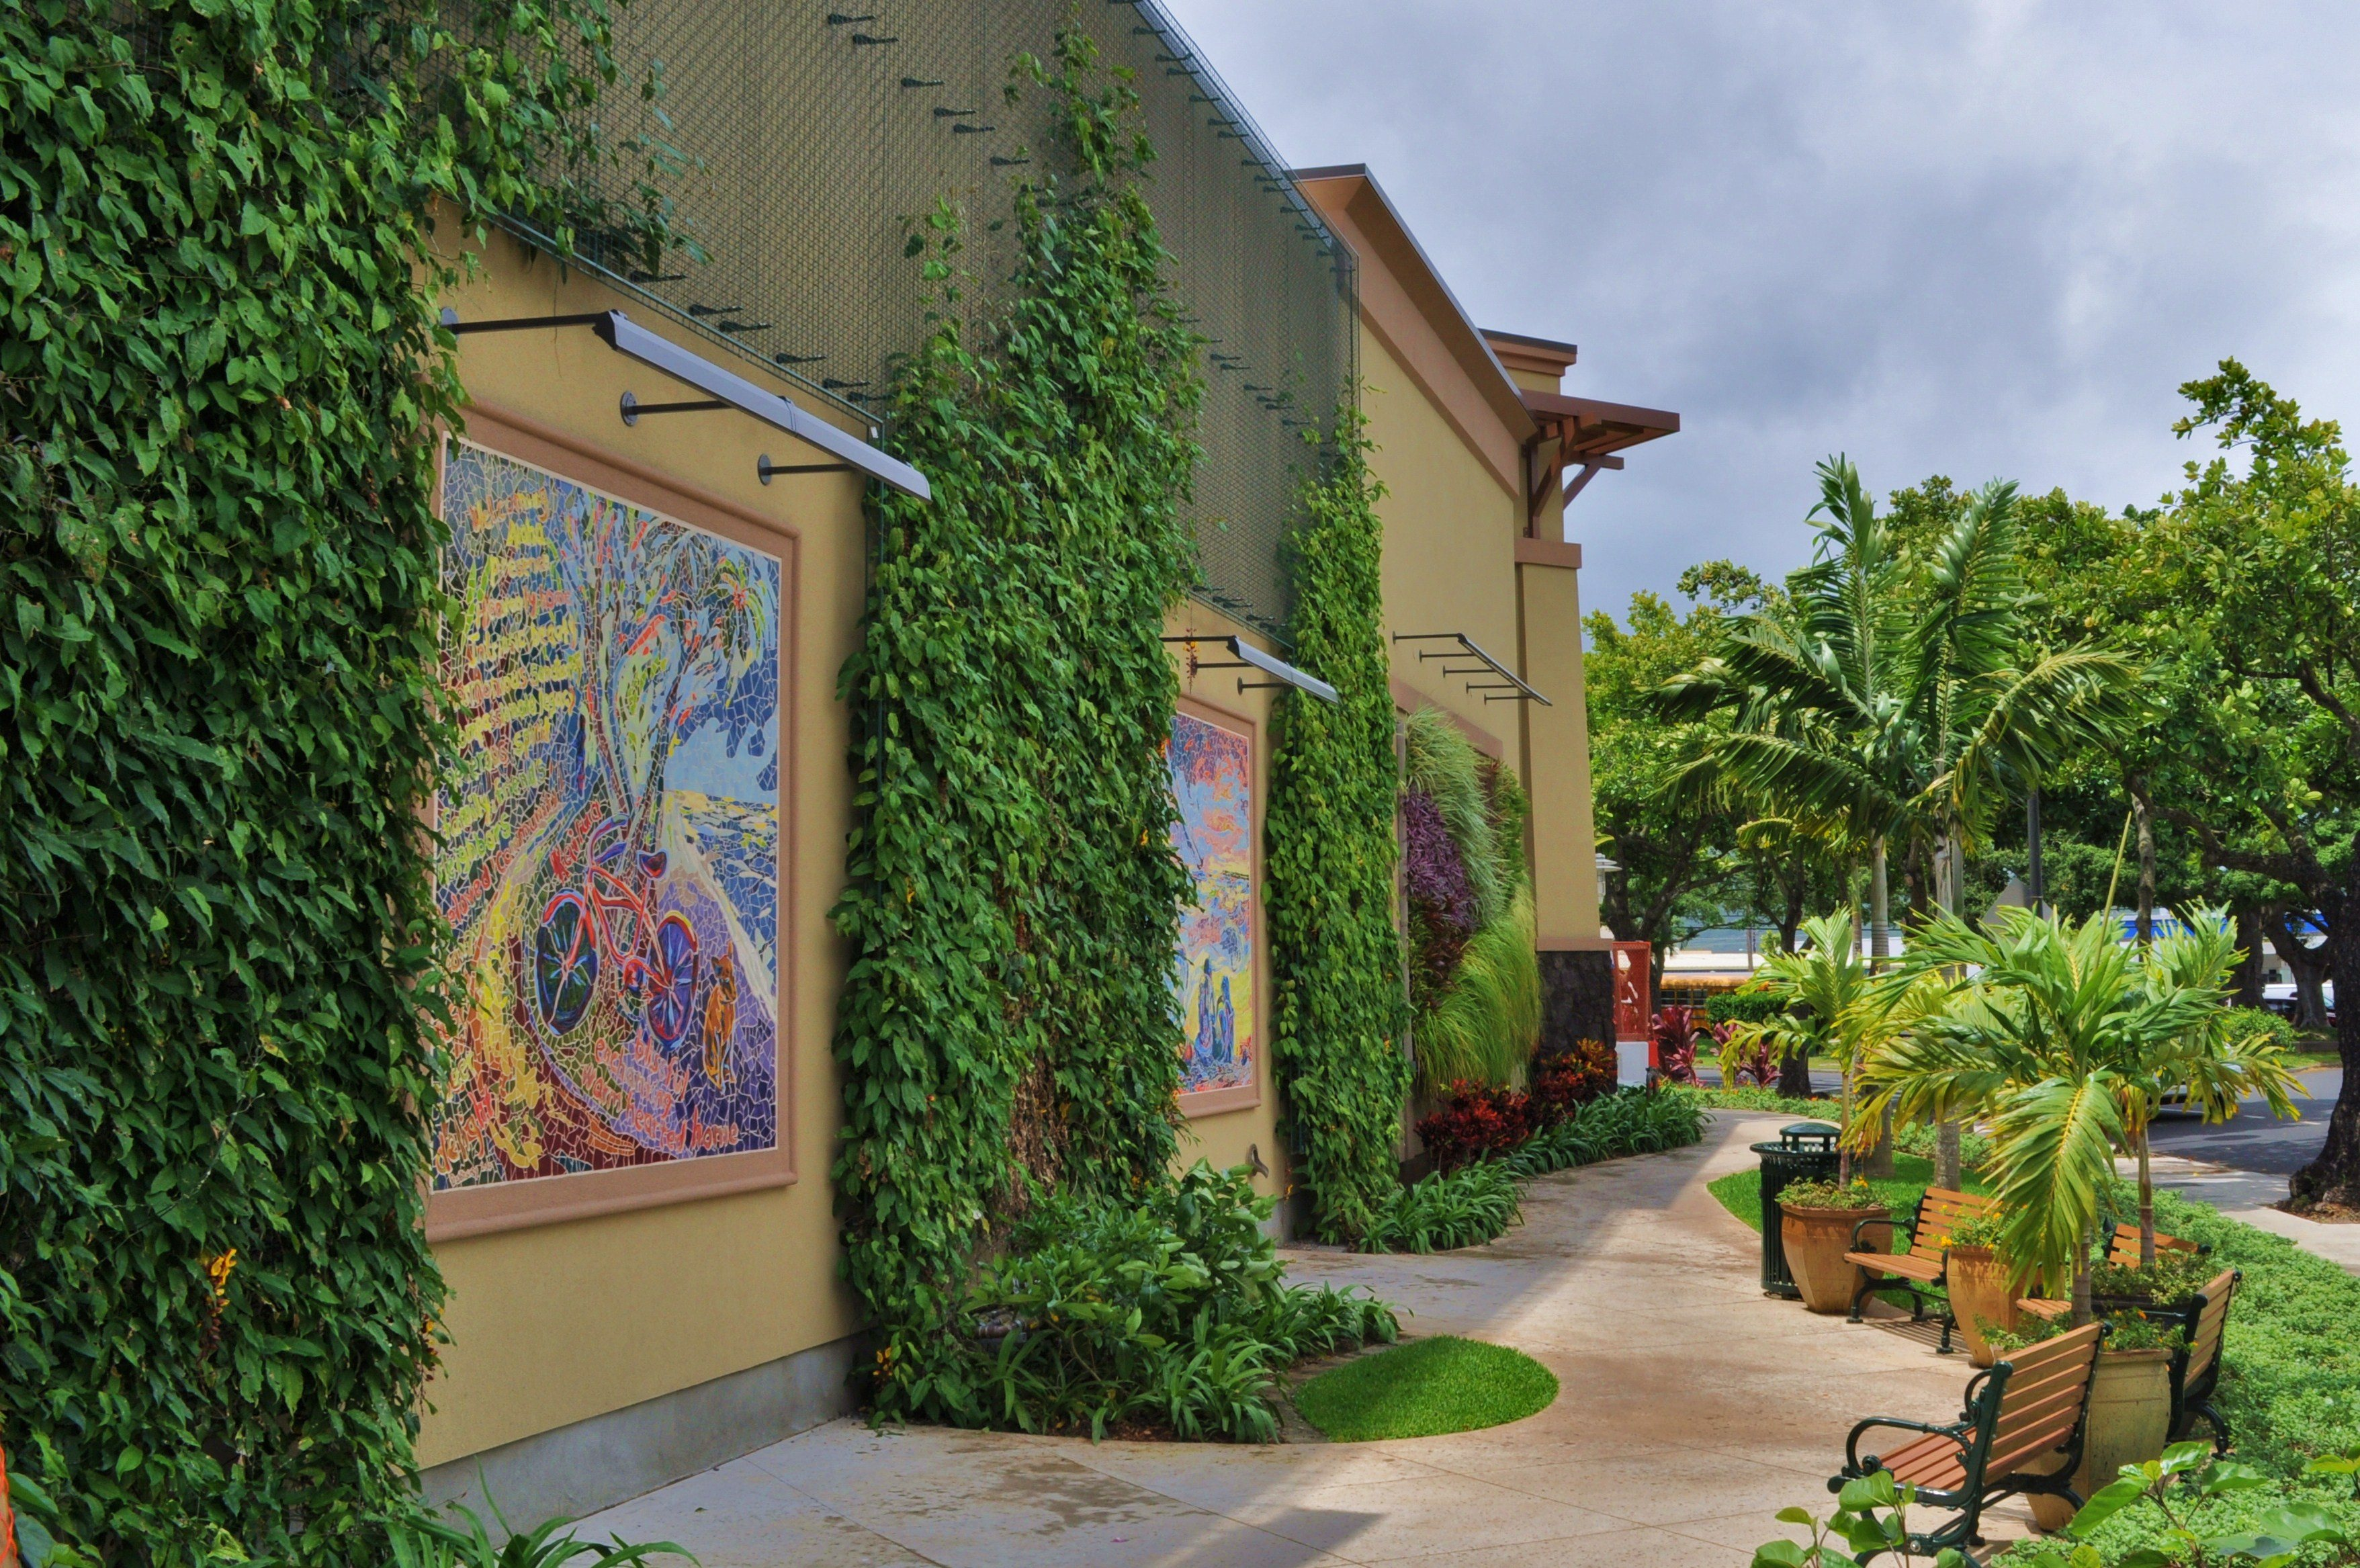 Living Wall at Kailua Whole Foods